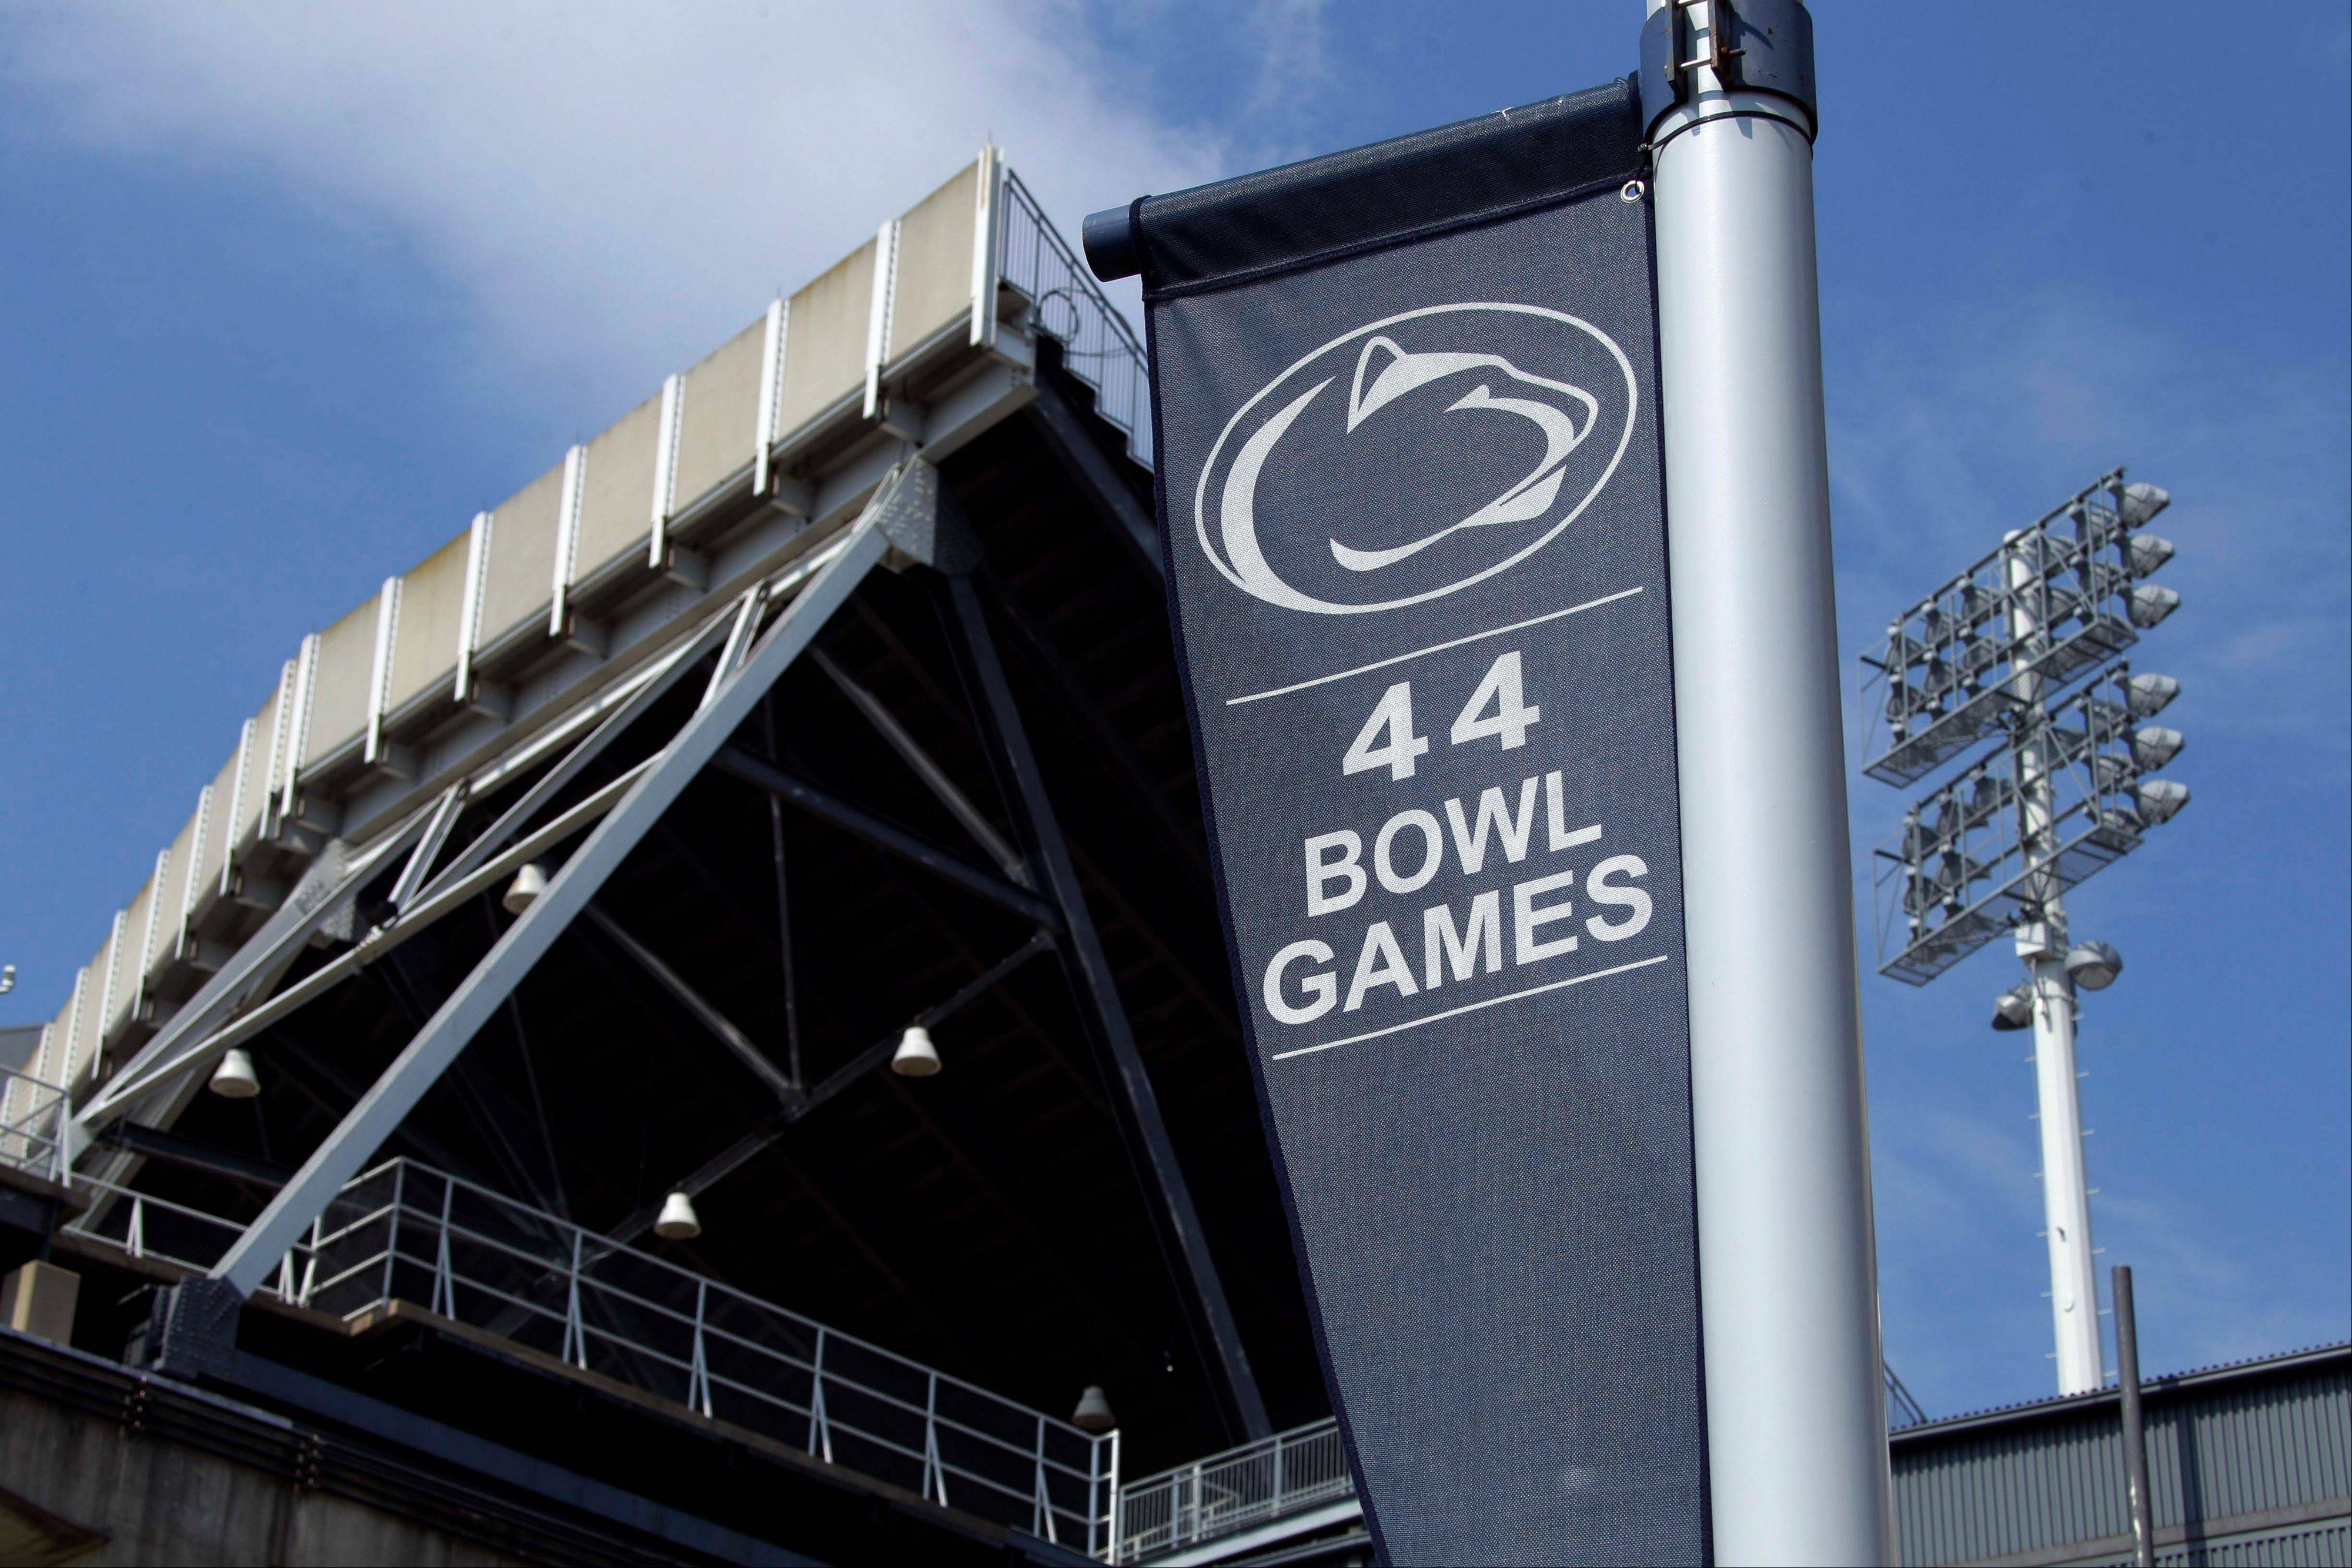 A banner celebrating the 44 bowl games that the Penn State football team has played in hangs outside of Beaver Stadium on the Penn State University main campus in State College, Pa., Monday, July 23, 2012. Penn State football was all but leveled Monday by an NCAA ruling that wiped away 14 years of coach Joe Paterno's victories and imposed a mountain of fines and penalties, crippling a program whose pedophile assistant coach spent uncounted years molesting children, sometimes on university property.